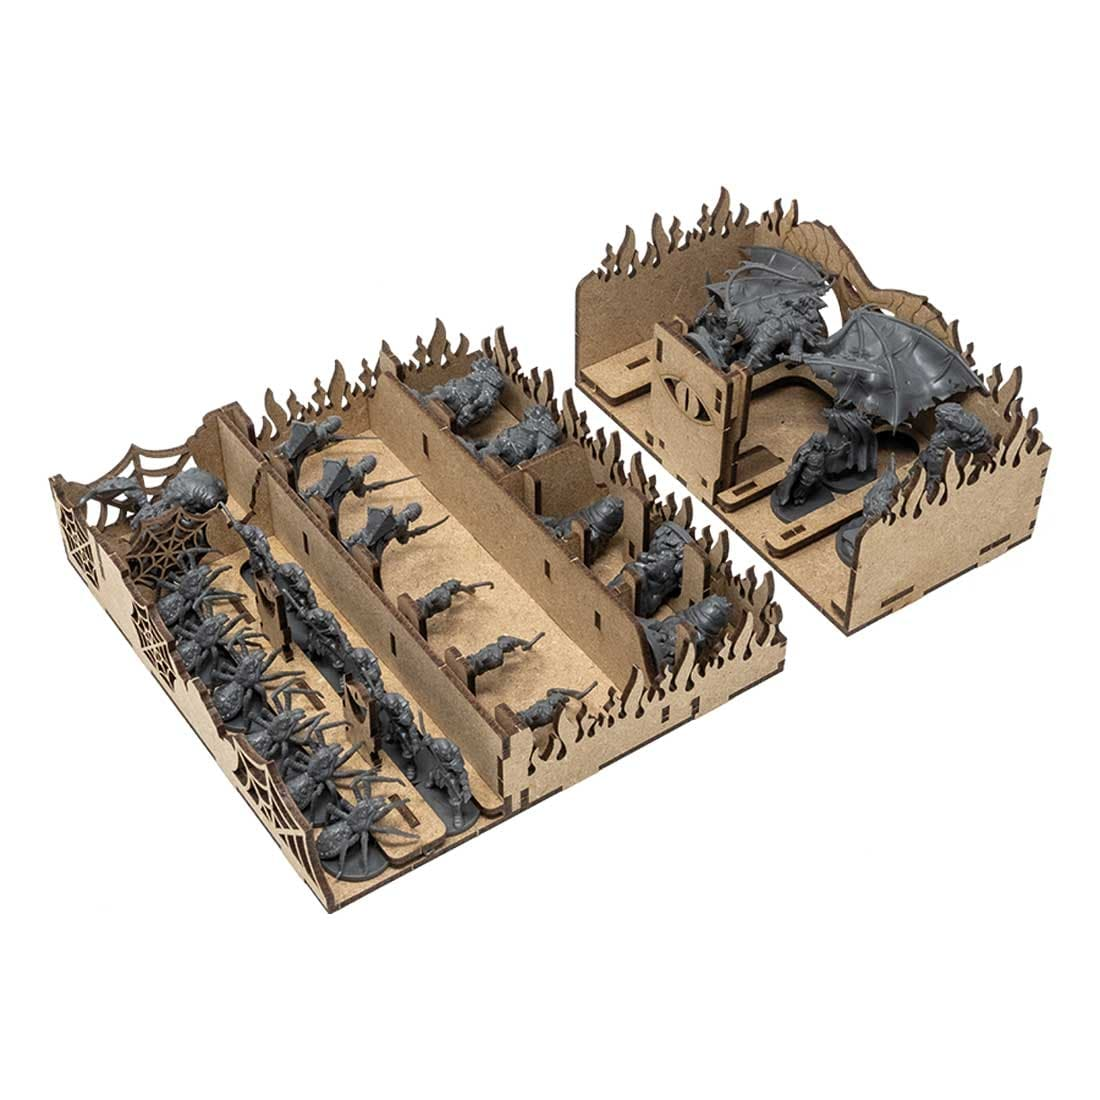 The Lord Of The Rings: Journeys In Middle-Earth Expansions Organizer Insert - 4